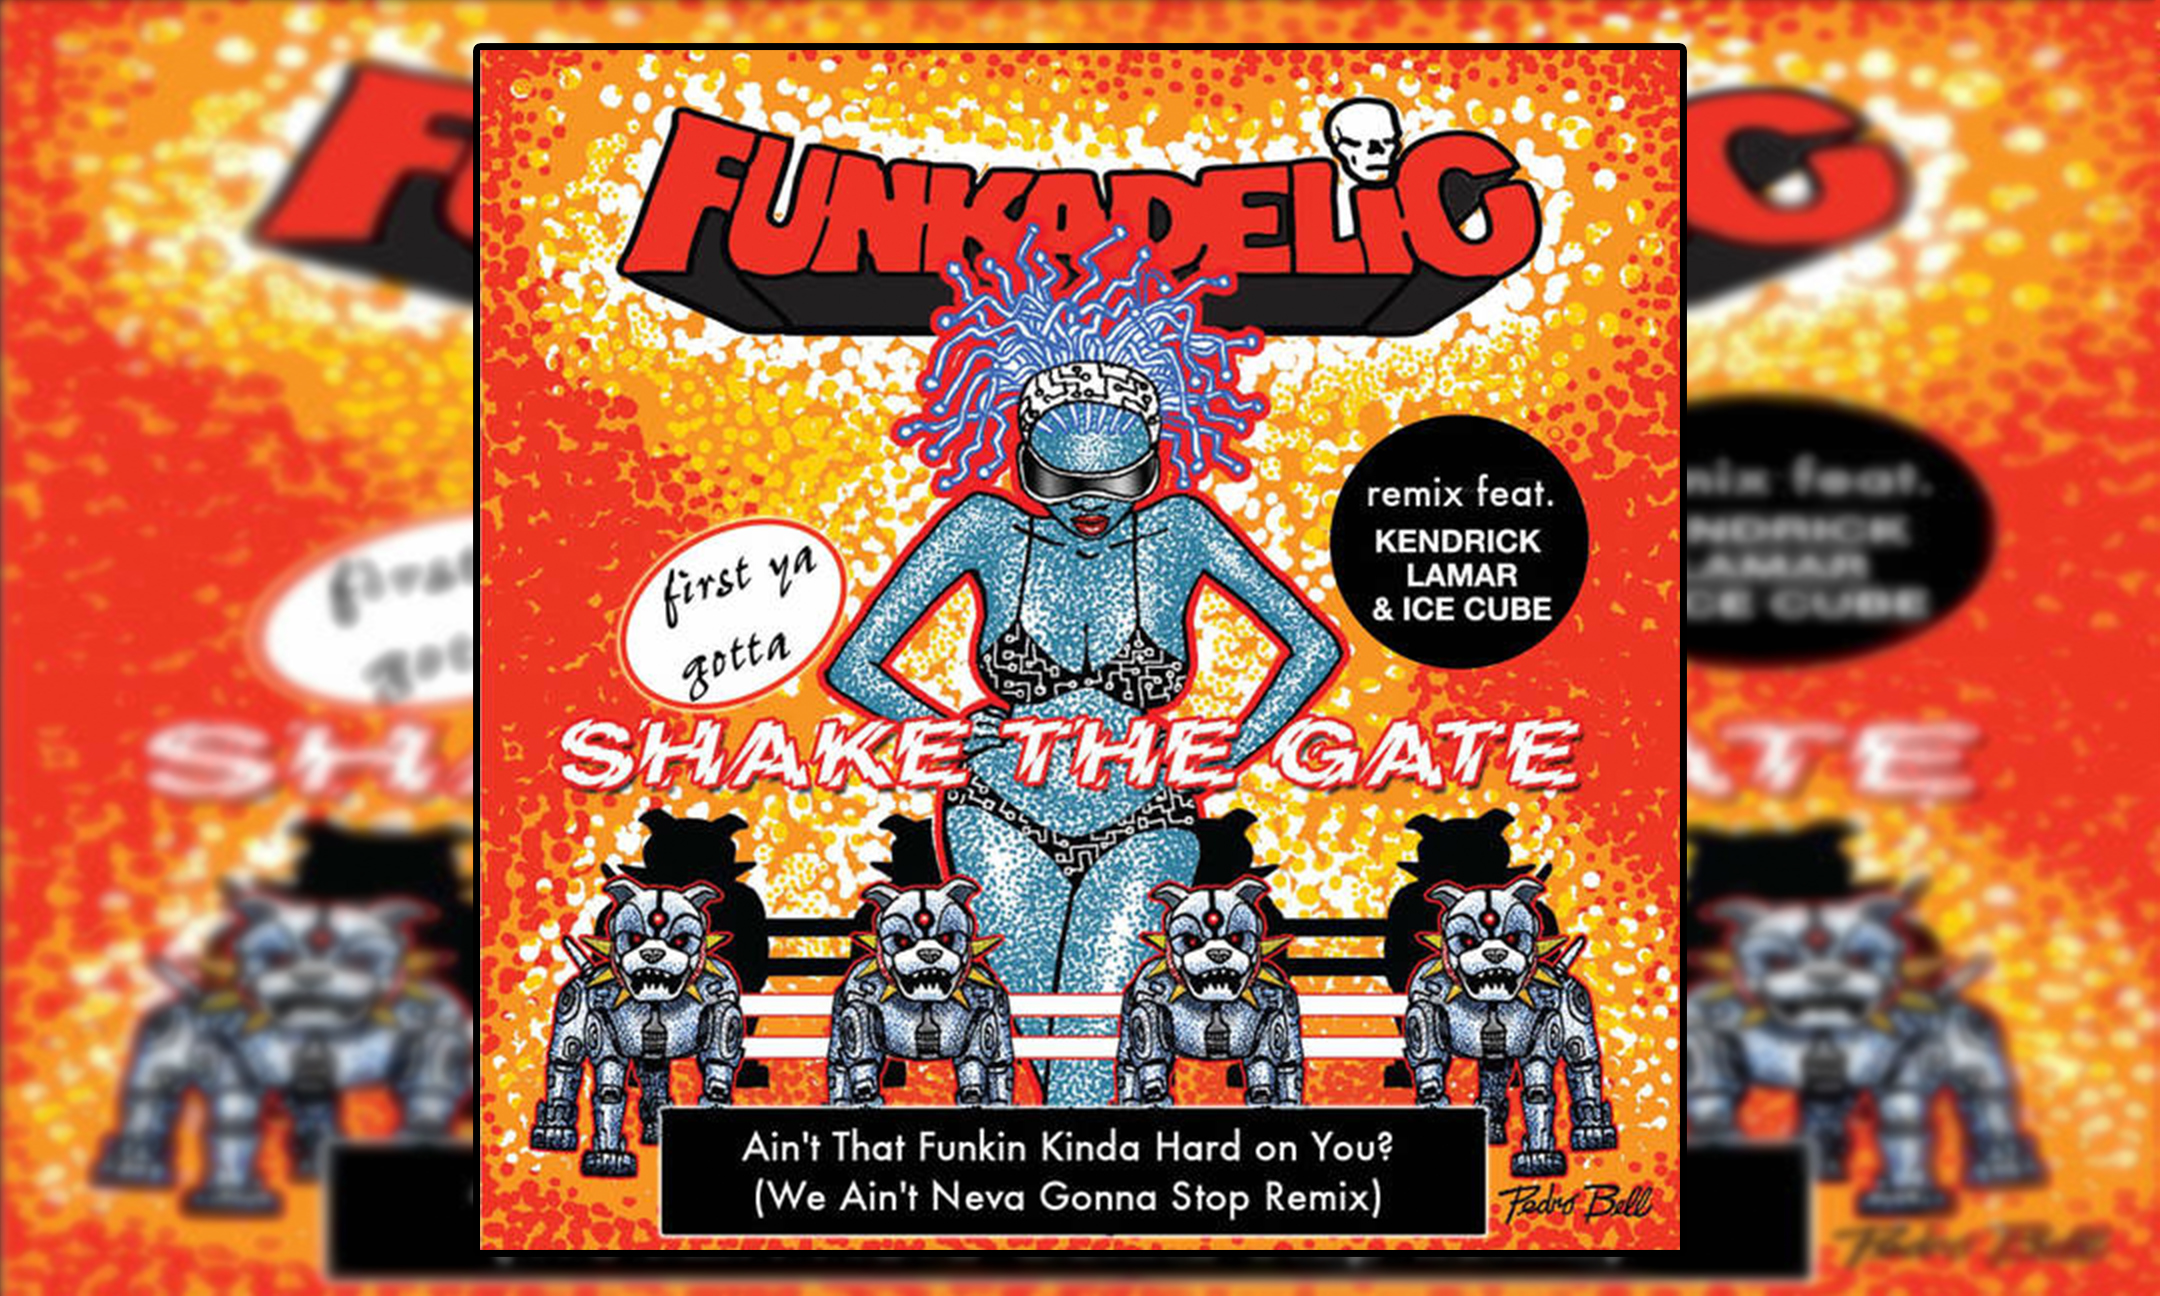 George Clinton and Parliament Funkadelic – Ain't That Funkin' Kinda Hard On You? REMIX (feat. Kendrick Lamar & Ice Cube) #MusicVideo